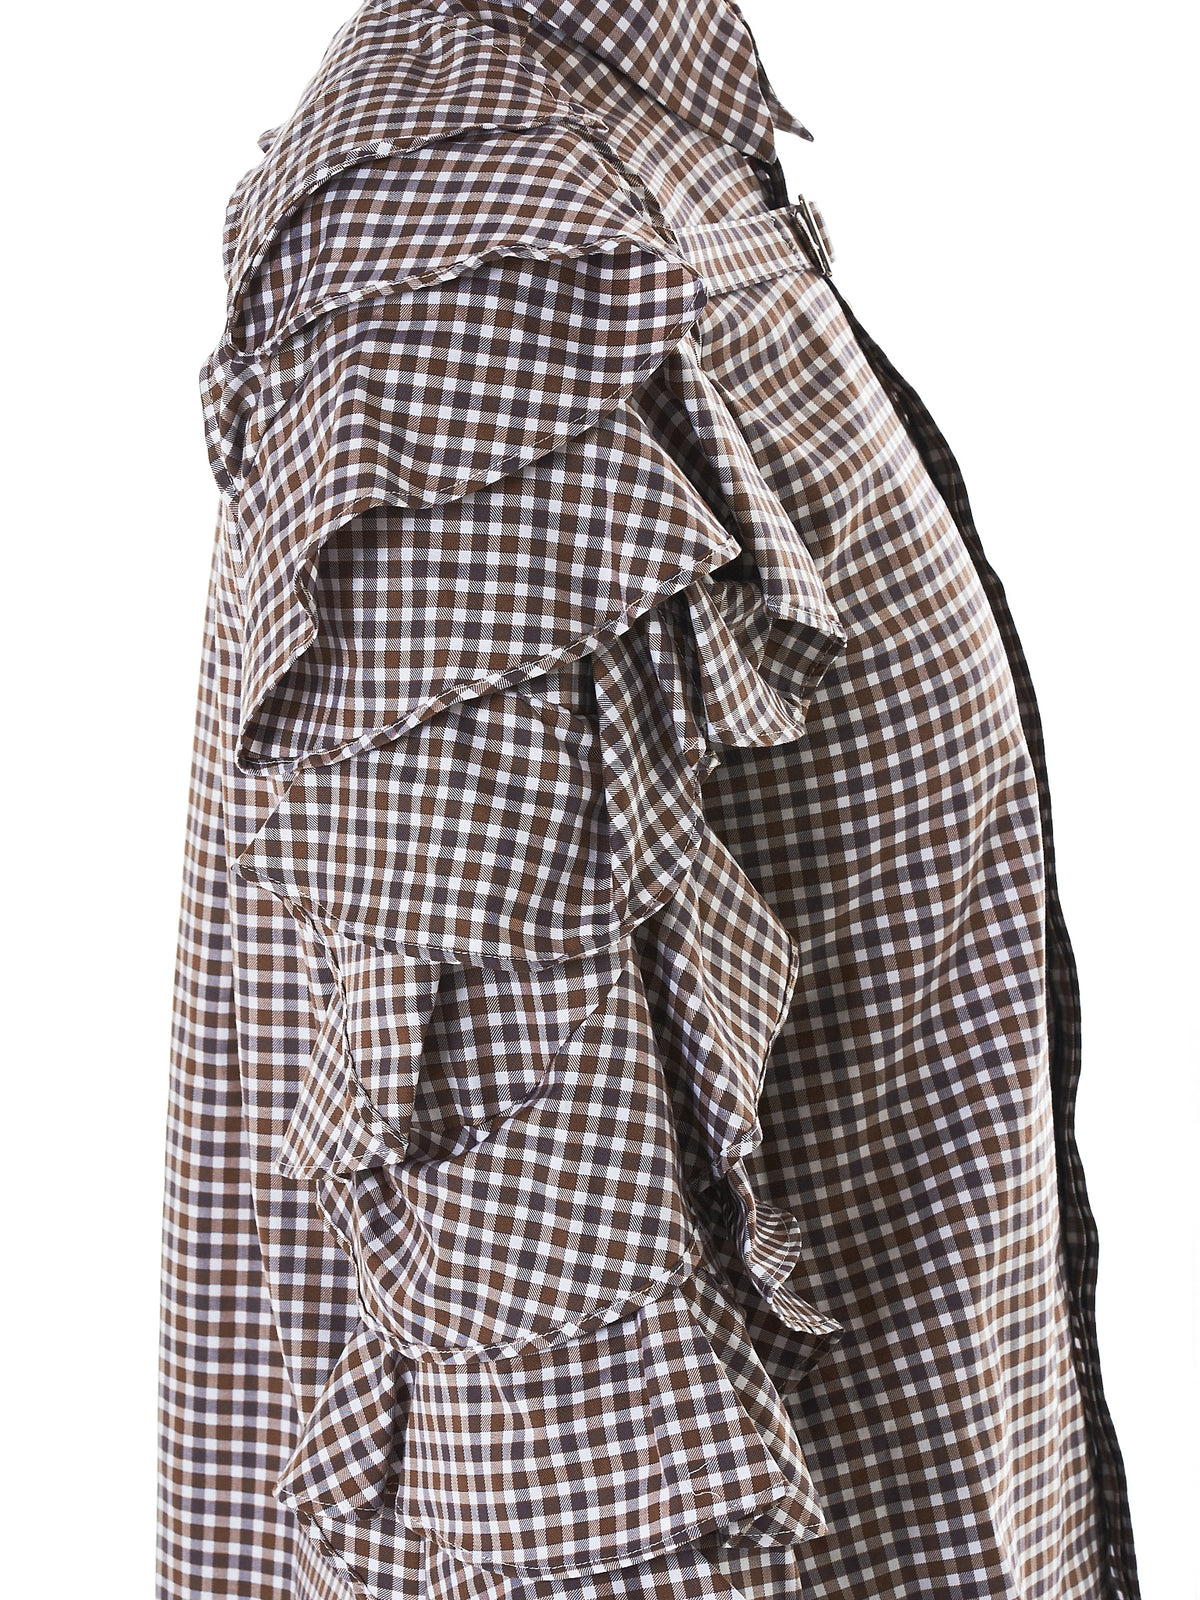 Tiered Ruffle Sleeve Check Shirt (RB-SH-W05-BROWN-CHECK)